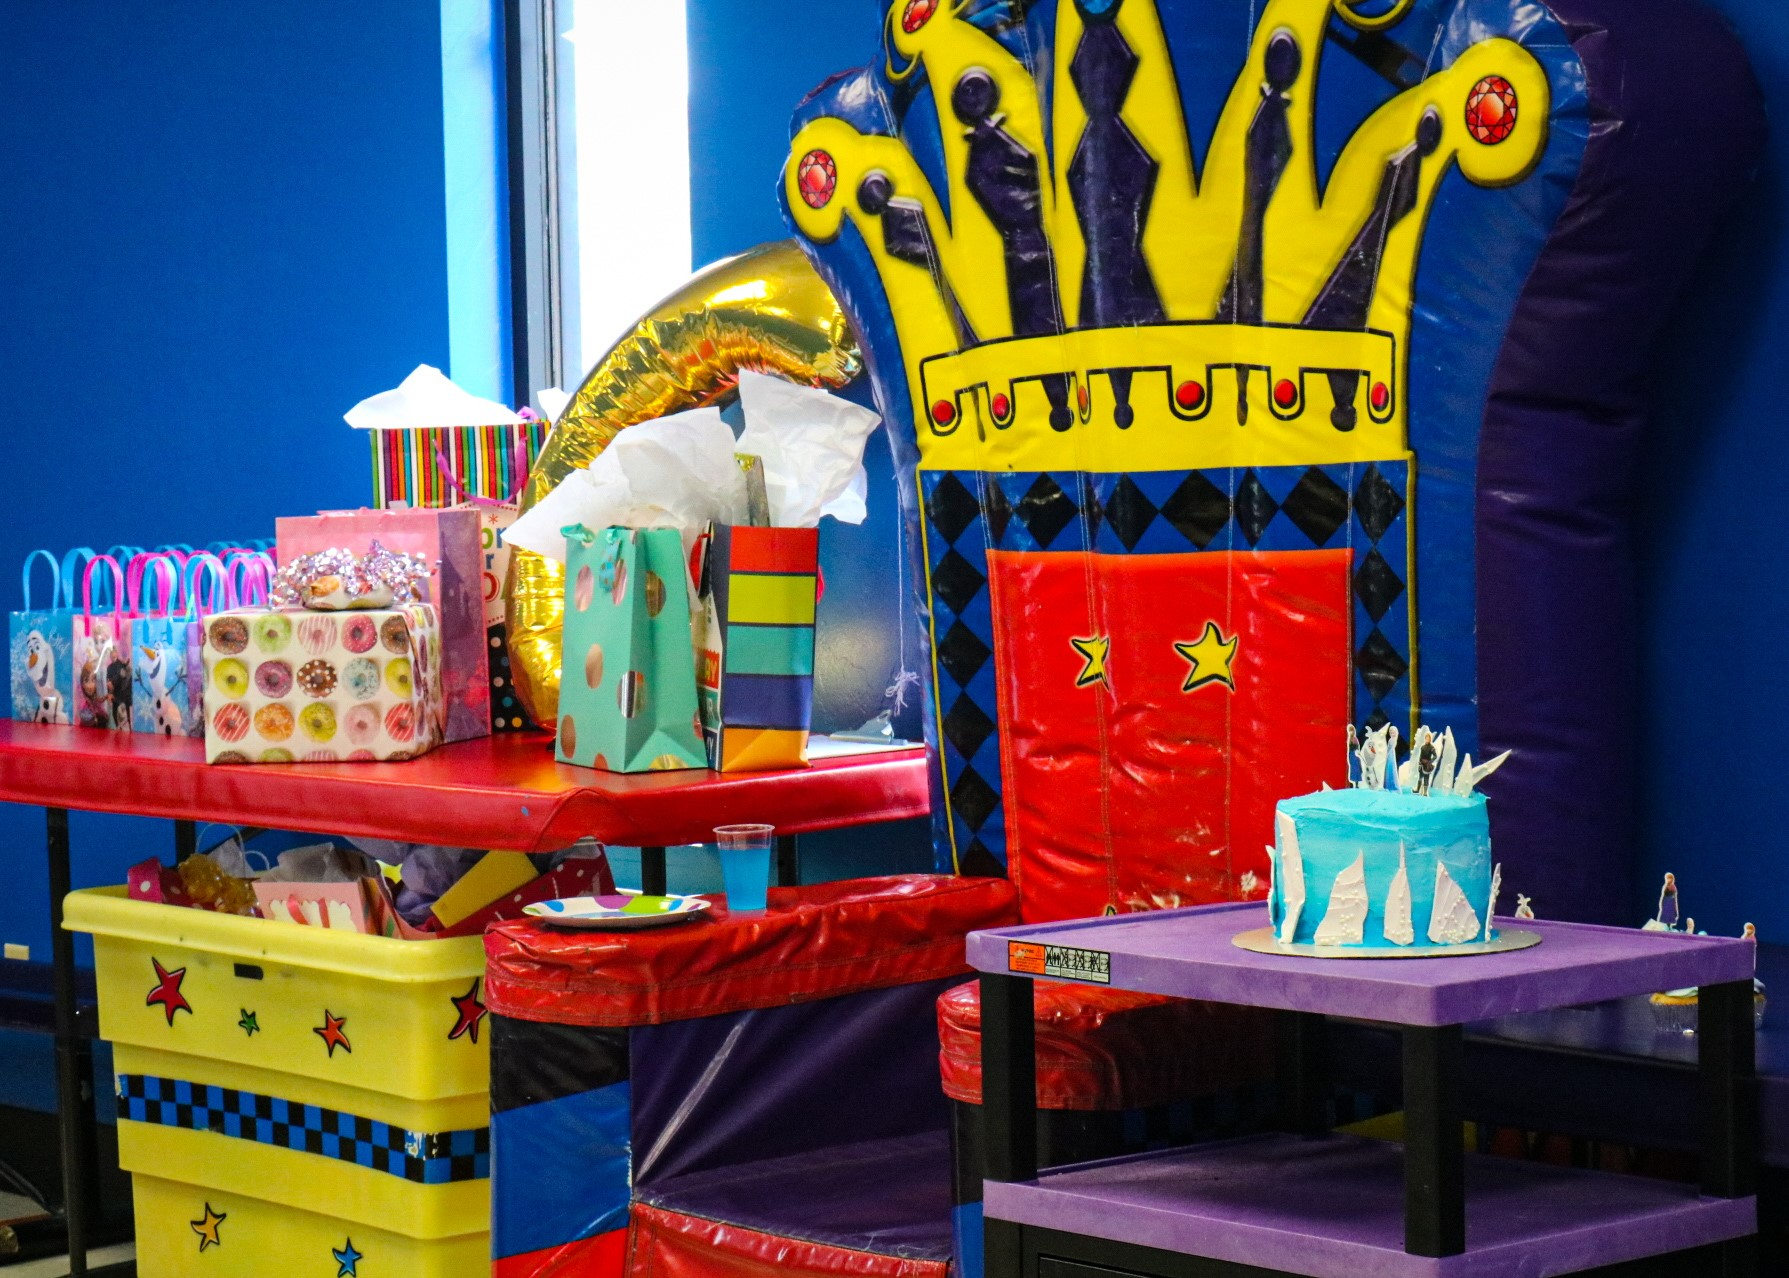 Pump It Up birthday party room with throne for birthday child, a cake and presents on a table.